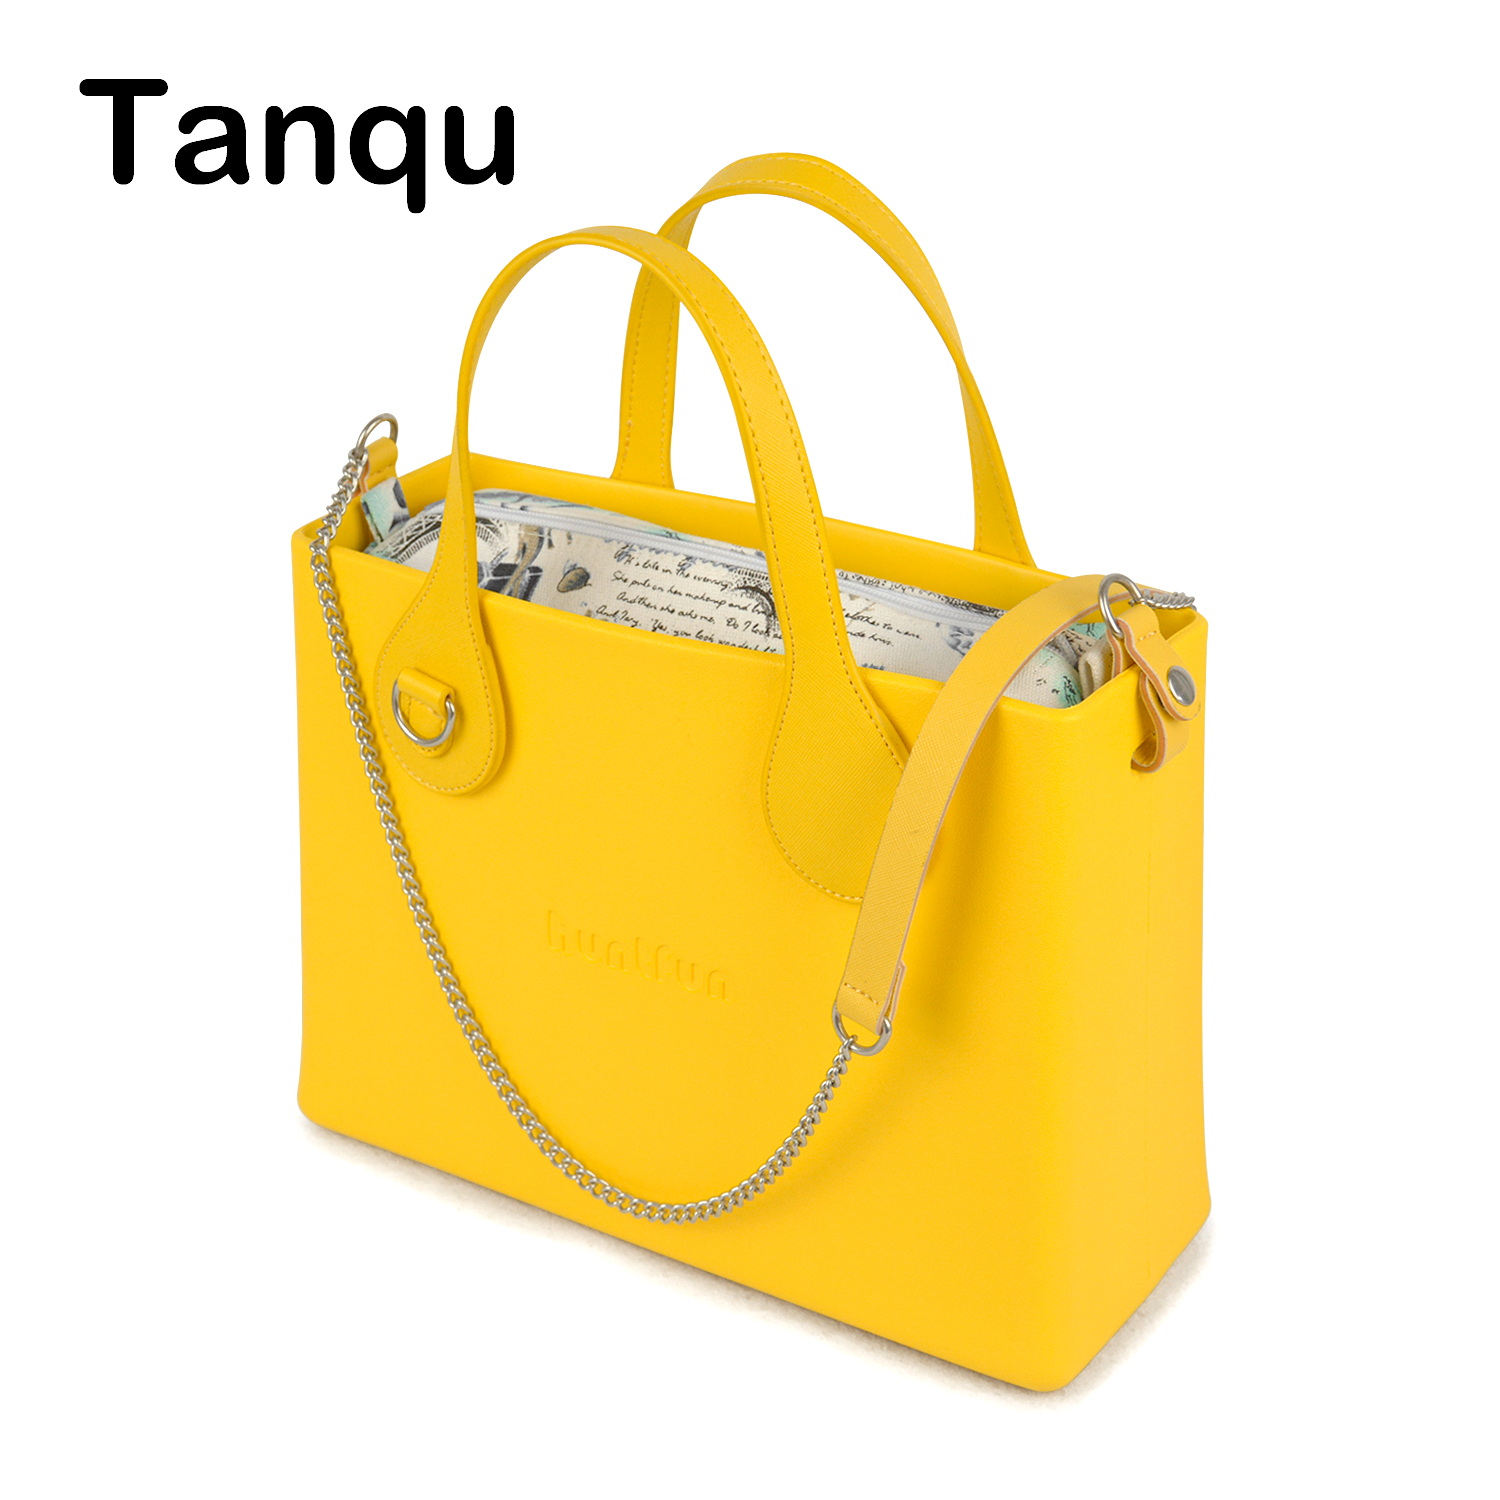 Tanqu O Bag Style huntfun Rubber Silicon Square Bag with D Buckle Handle Crossbody Chain Insert